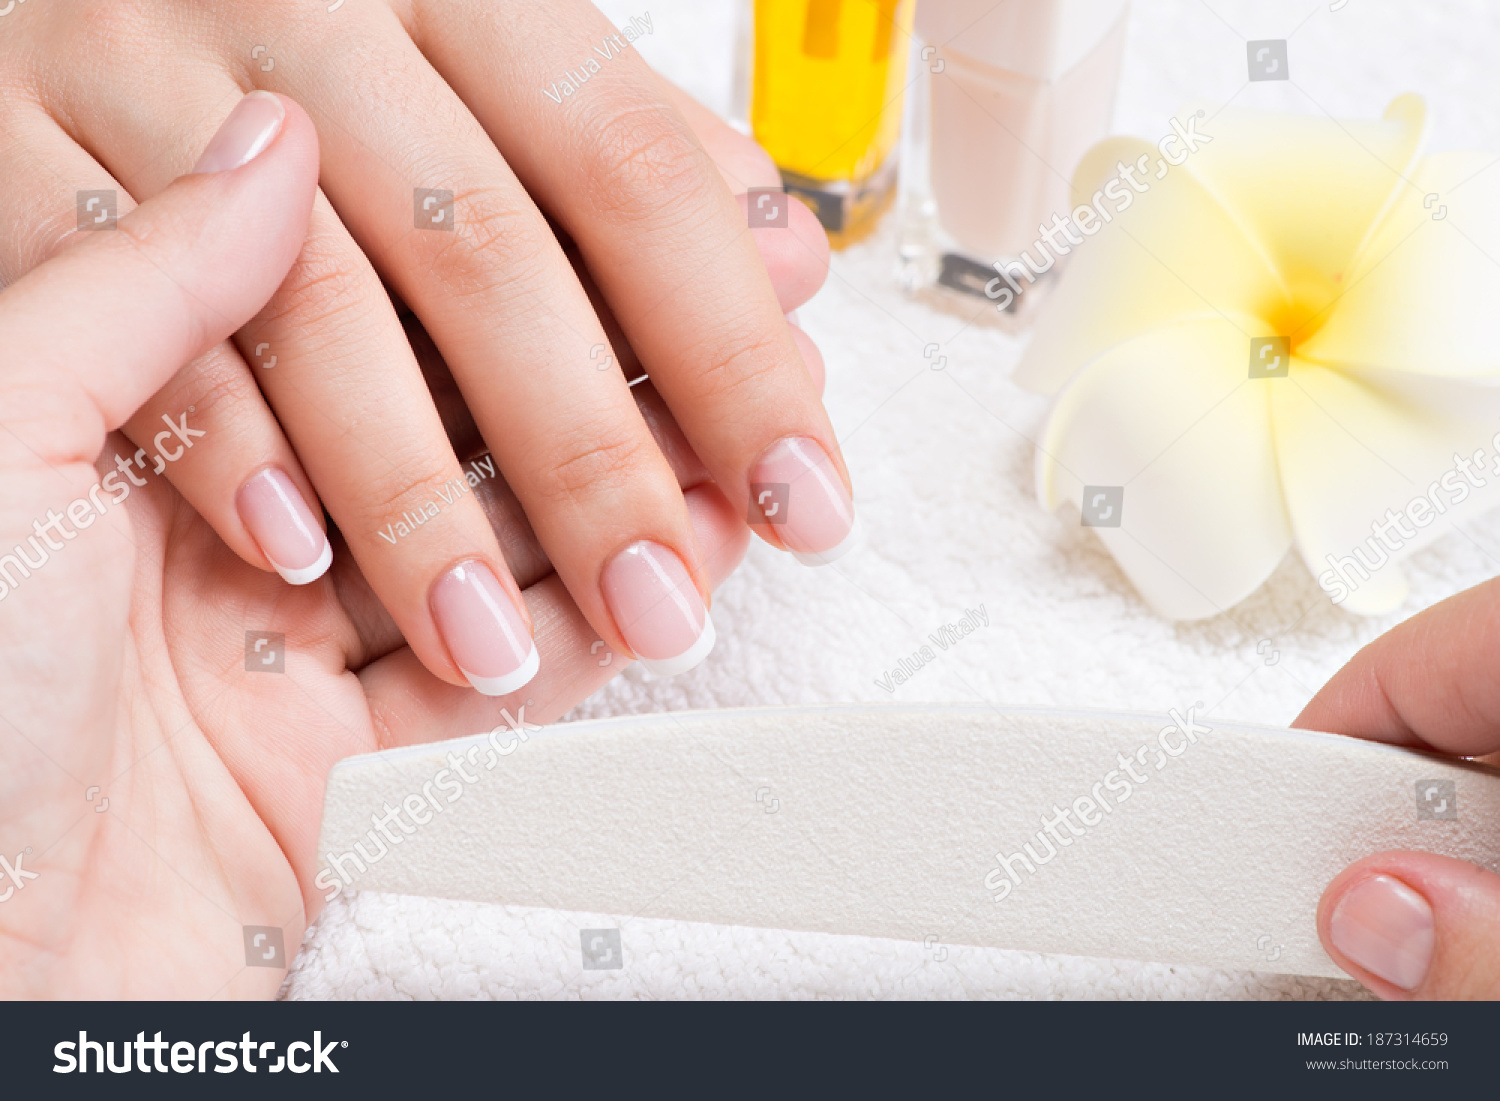 Woman nail salon receiving manicure by stock photo for A trial beauty treatment salon